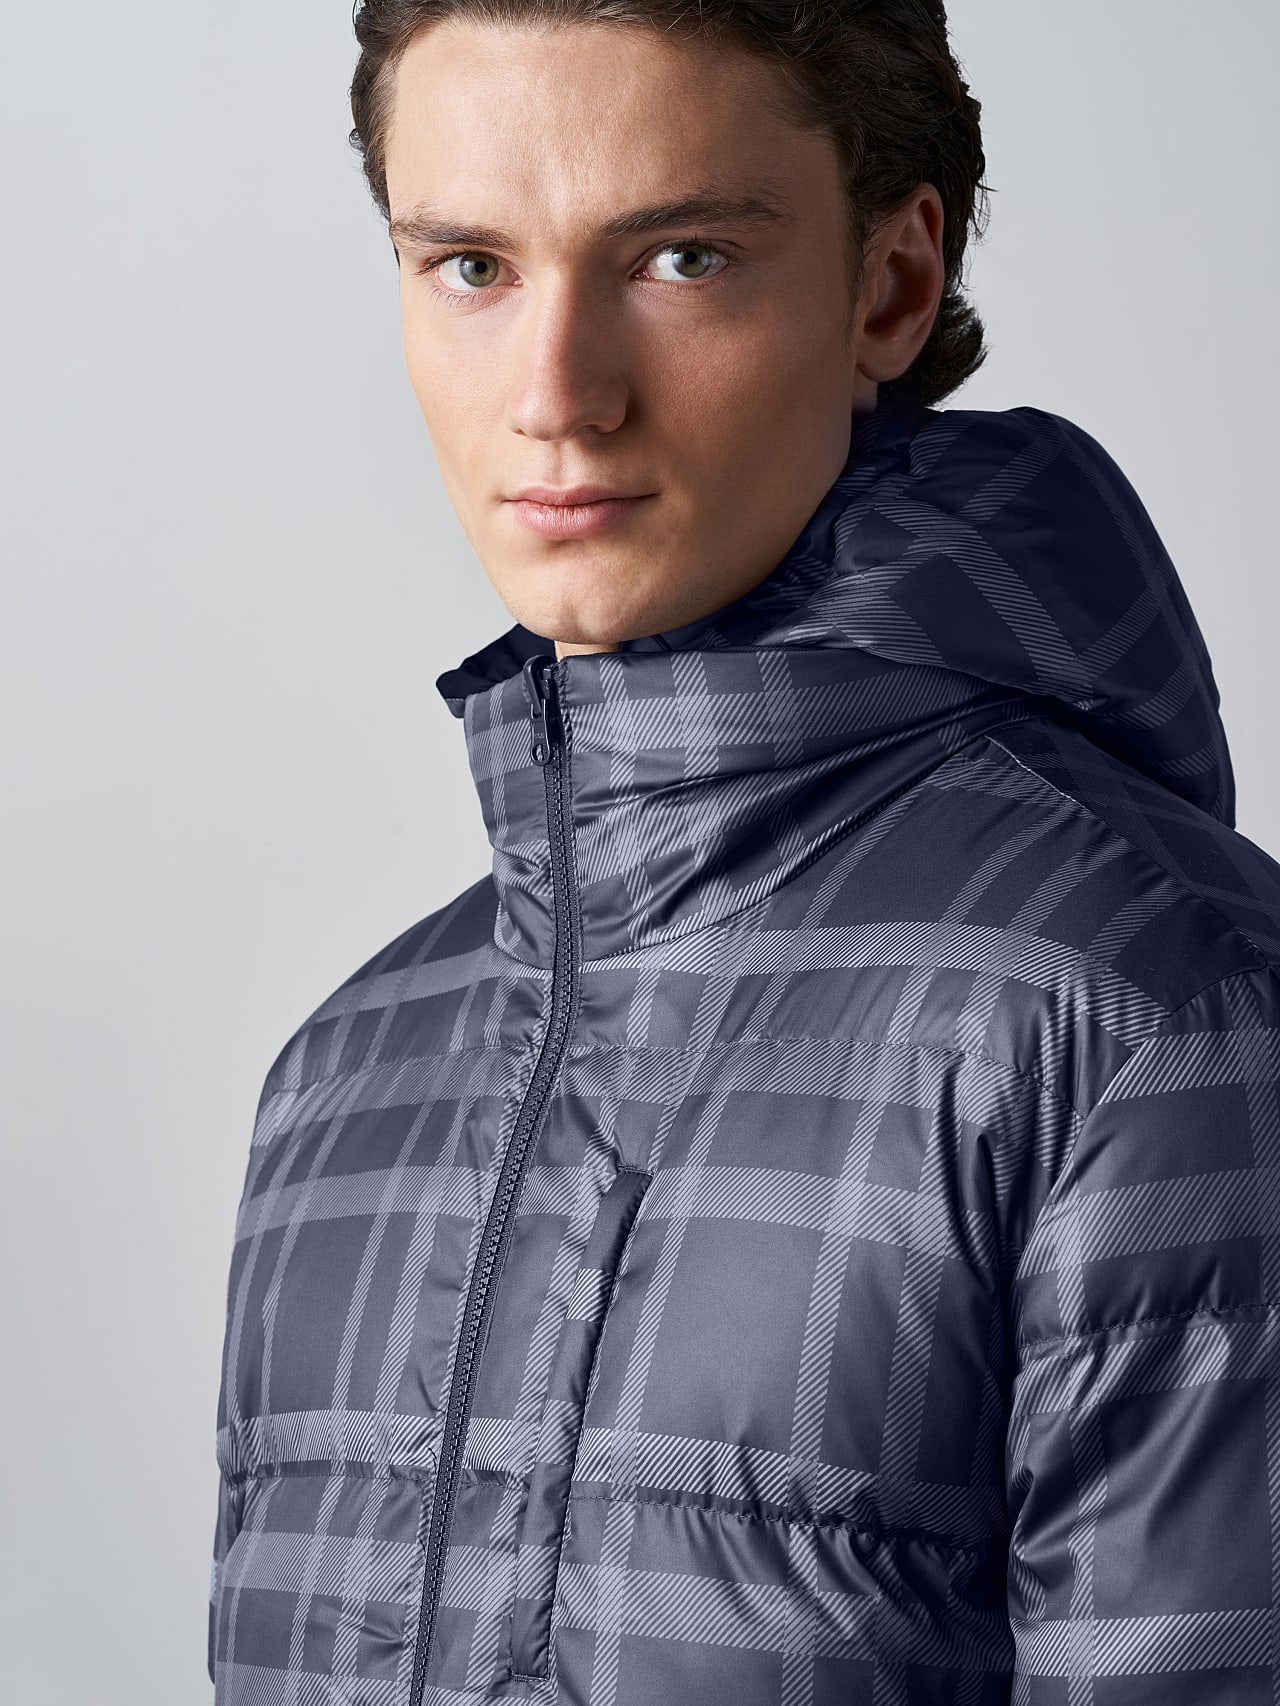 OTACE V1.Y5.02 Reversible 2-in-1 Puffer Jacket navy scene7.view.9.name Alpha Tauri